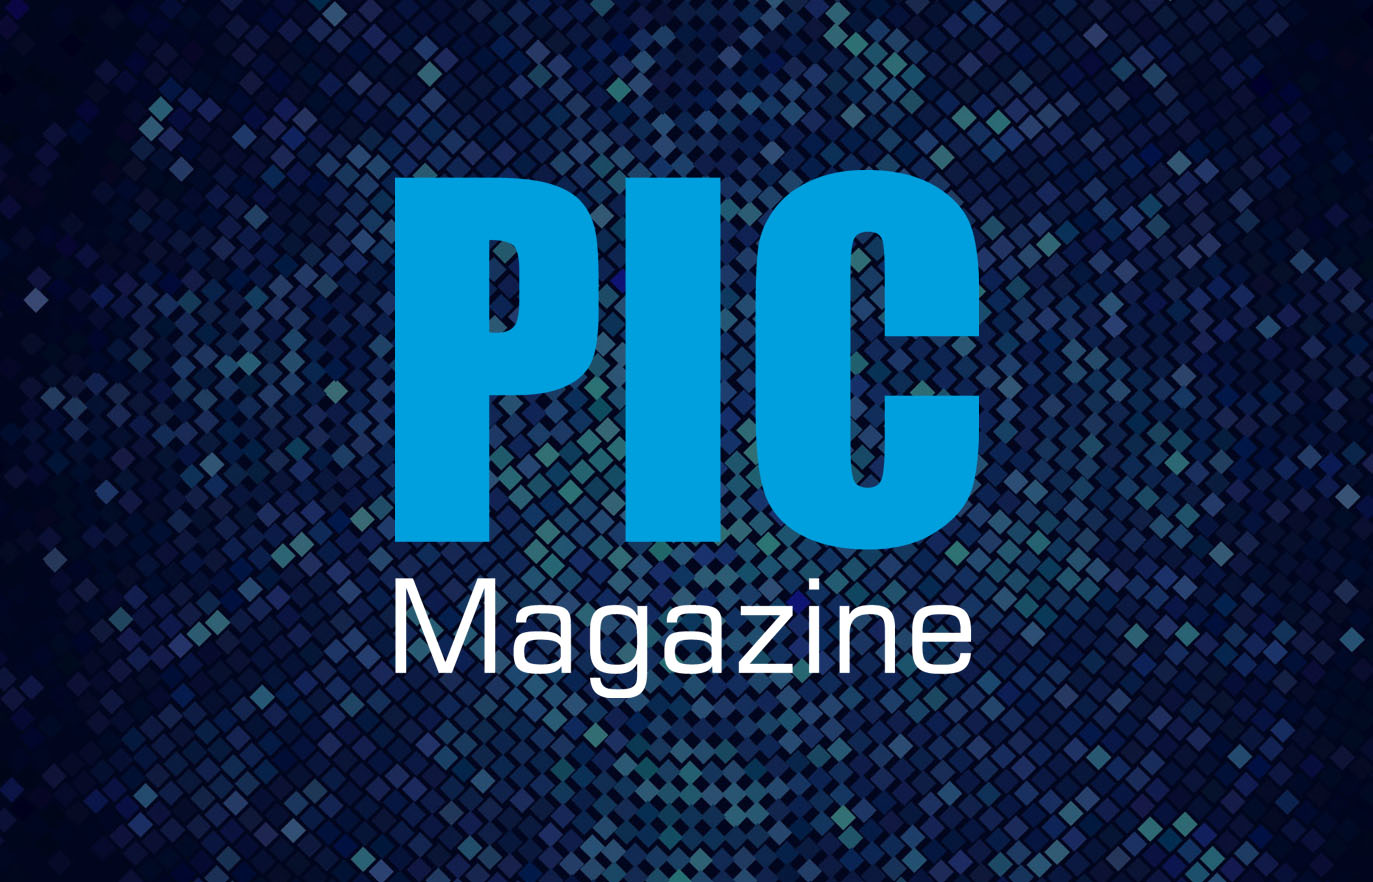 The PIC movement is gaining momentum in the marketplace